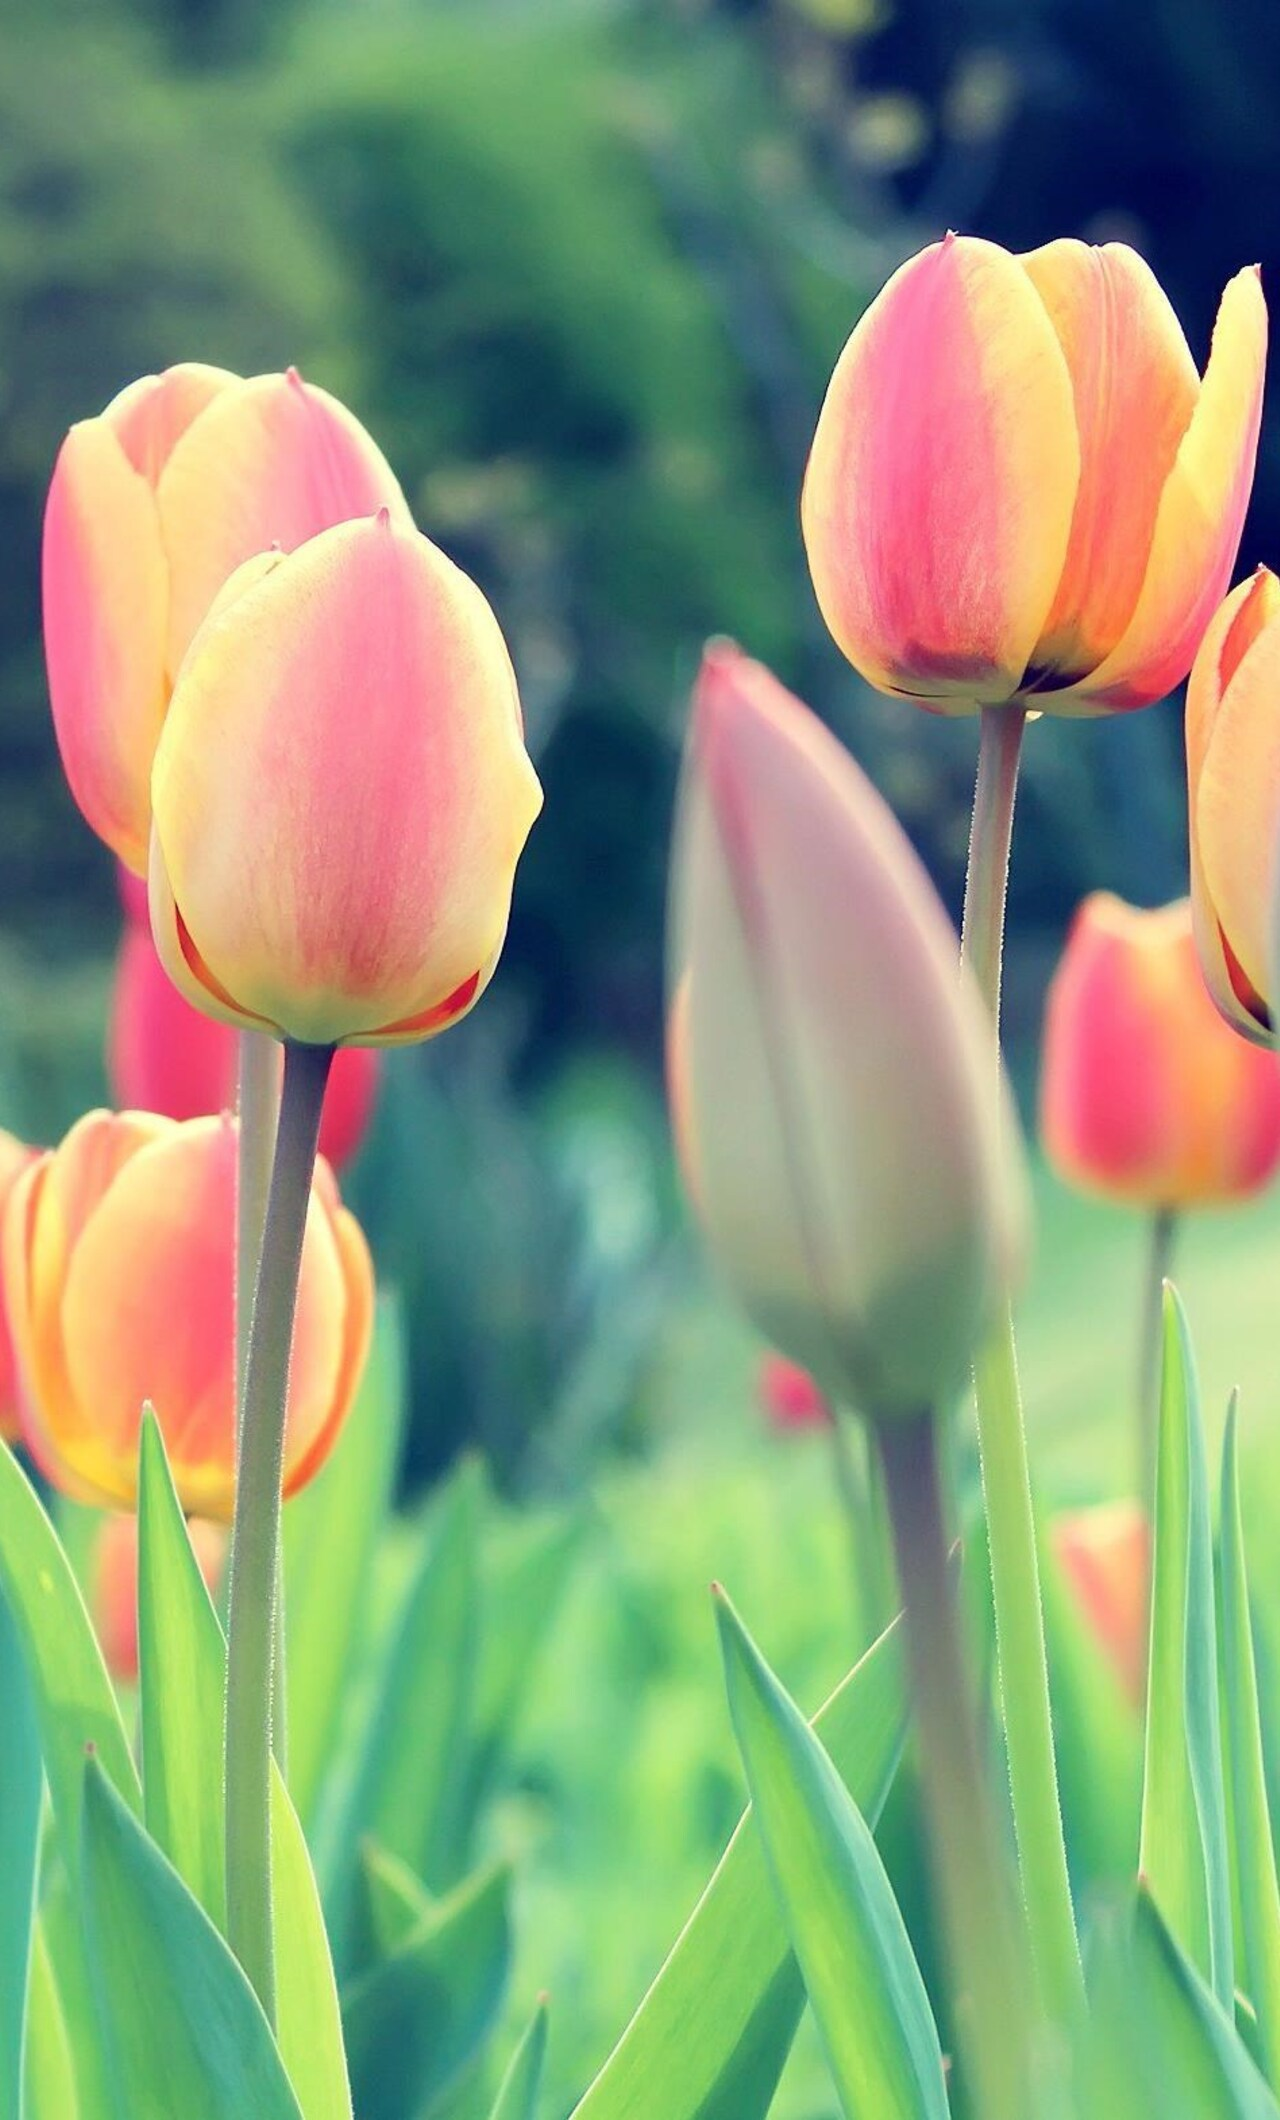 how to download pictures from my iphone to my computer 1280x2120 easter tulips iphone 6 hd 4k wallpapers images 2917